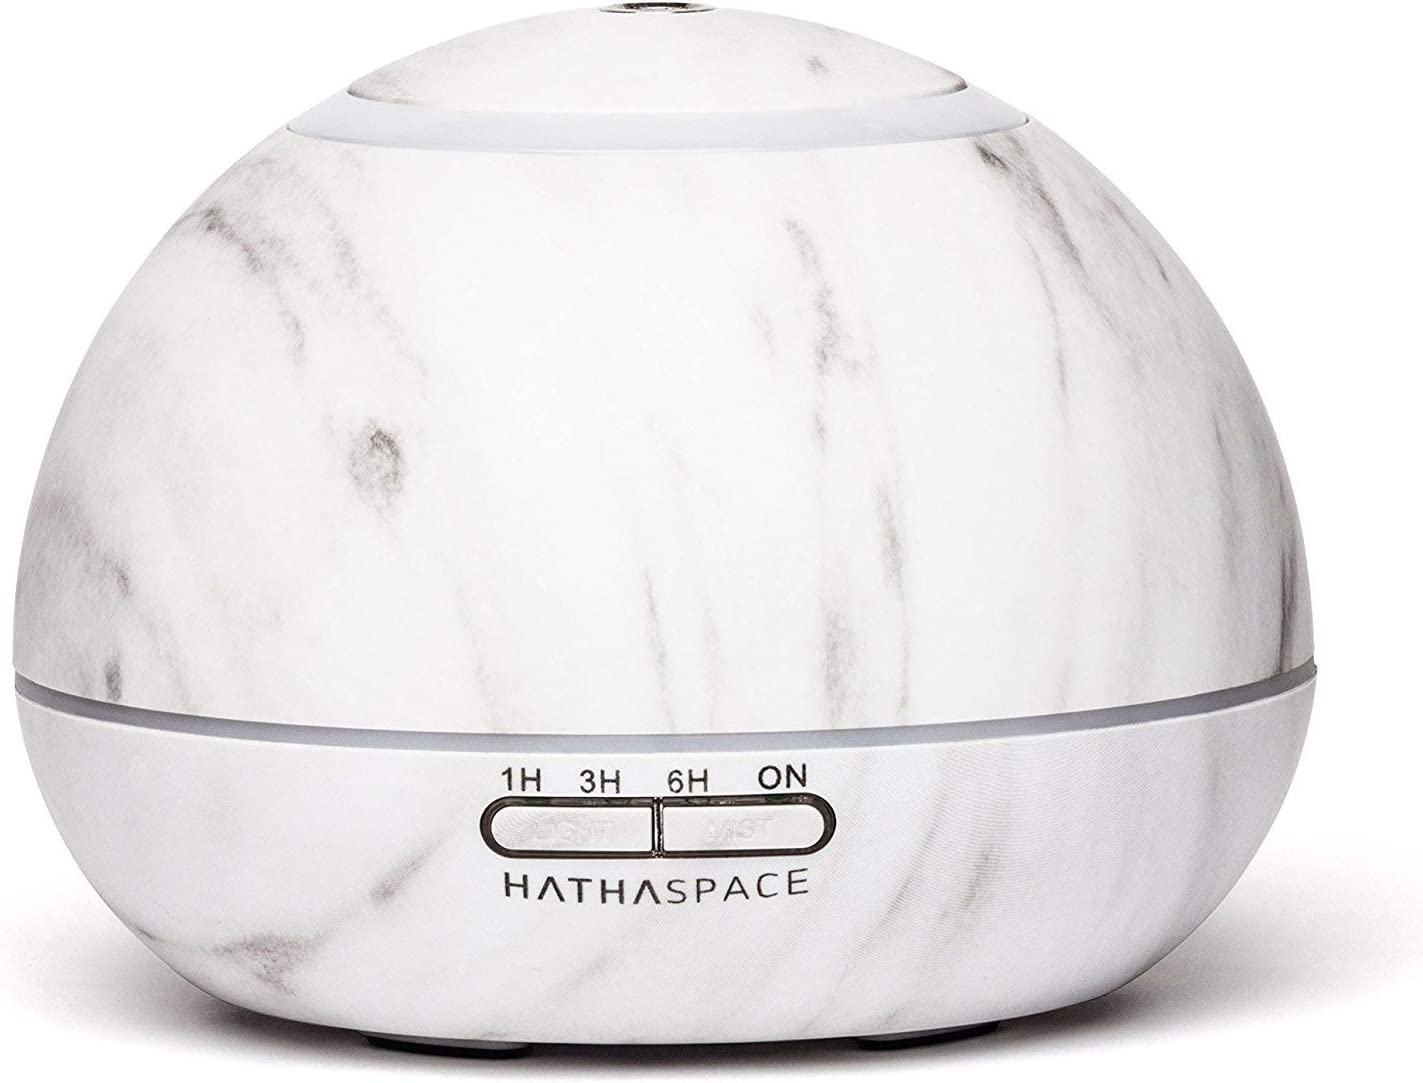 Hathaspace Marble Essential Oil Aroma Diffuser, 350ml Aromatherapy Fragrance Diffuser & Ultrasonic Cool Mist Room Humidifier, 18 Hour Capacity, BPA-Free, 7-Color Optional Ambient Light (White)